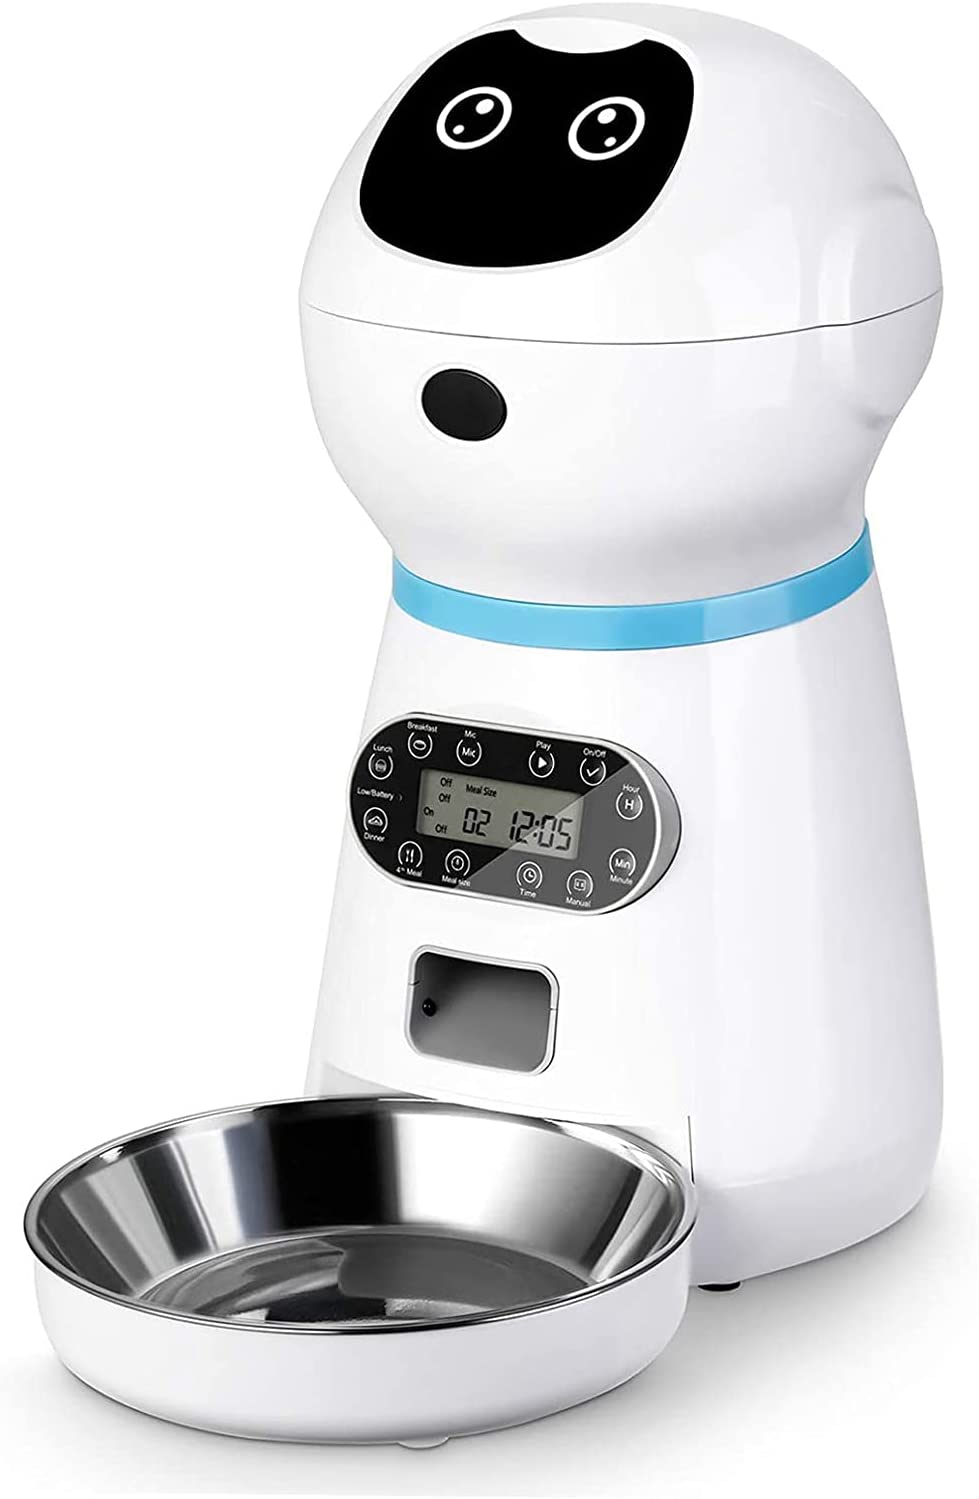 FIOVIEL Automatic Cat Feeder, Cat and Dog Food Timed Dispenser Intelligent Programming with 10s Voice Recorder for Small/Medium Pets Stainless Steel 3.5L